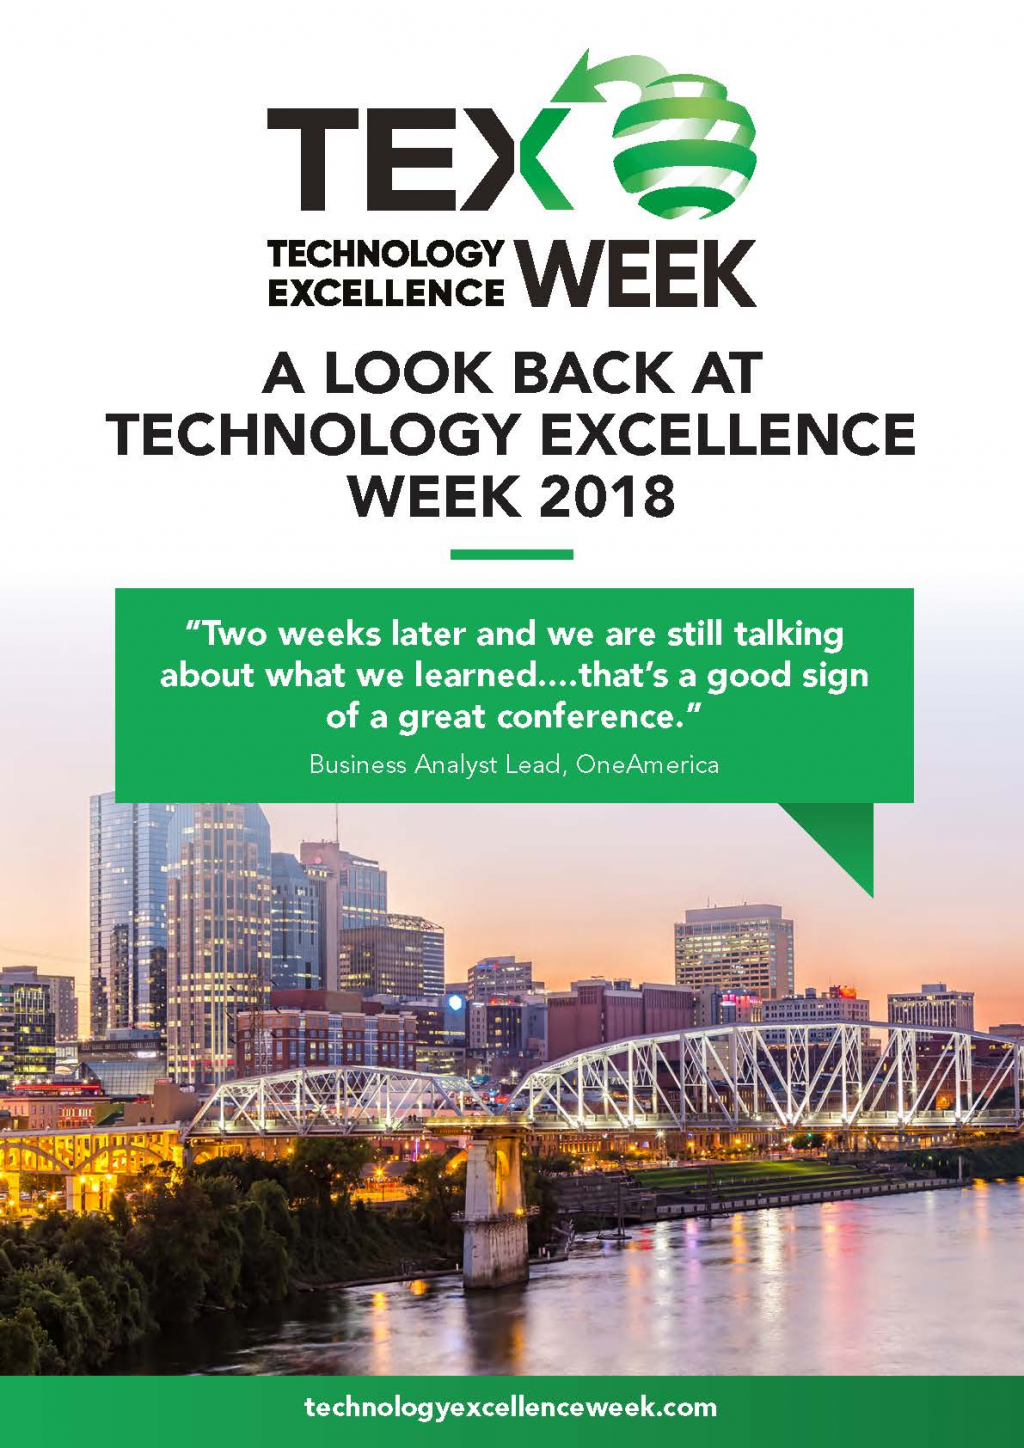 A Look Back at Technology Excellence Week 2018